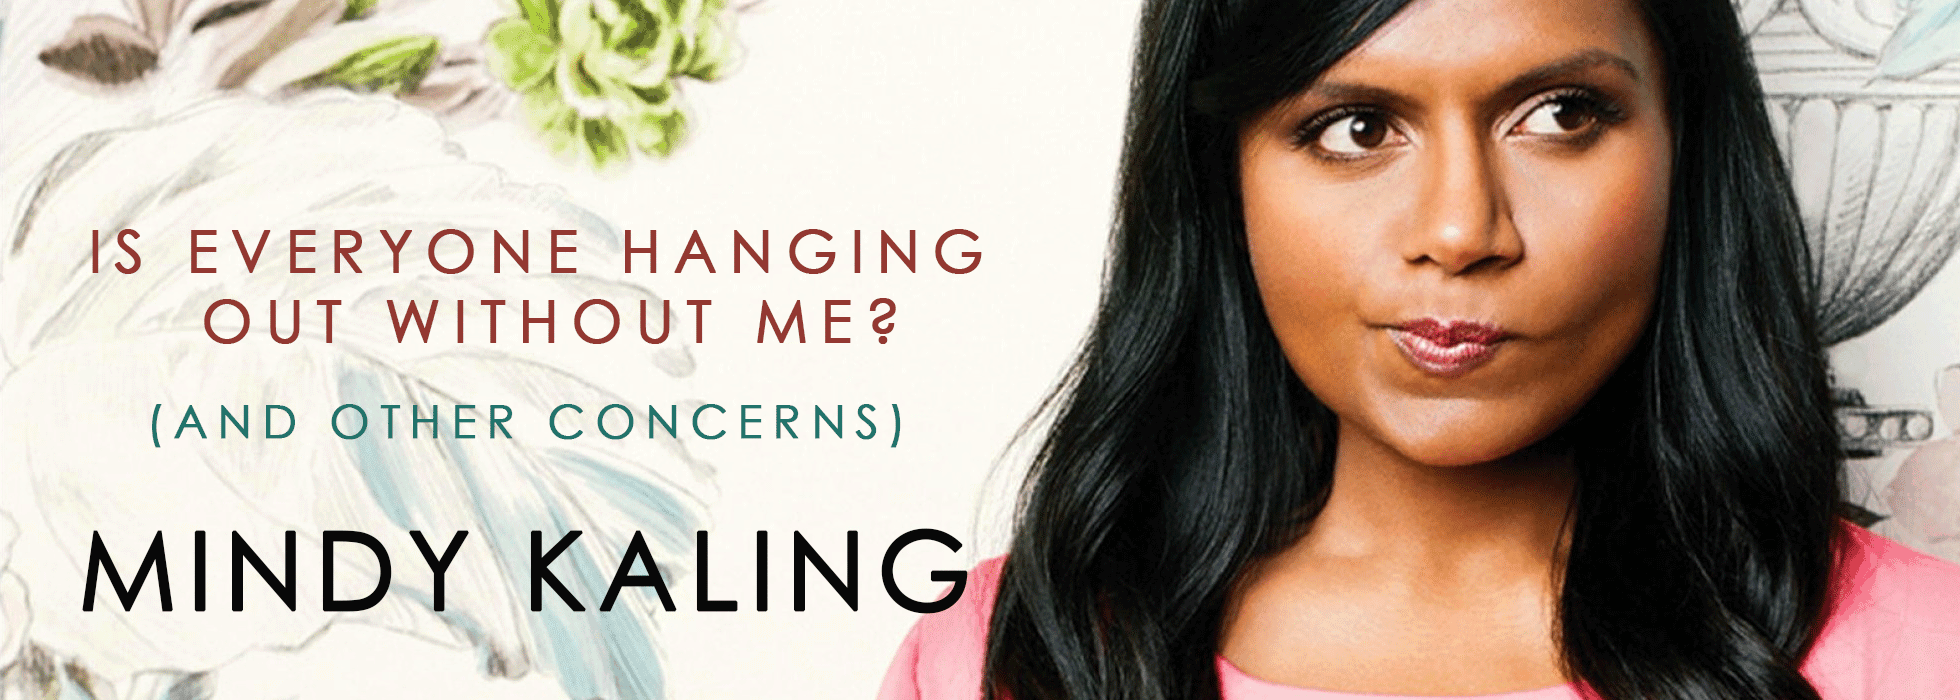 Is Everyone Hanging Out Without My by Mindy Kaling